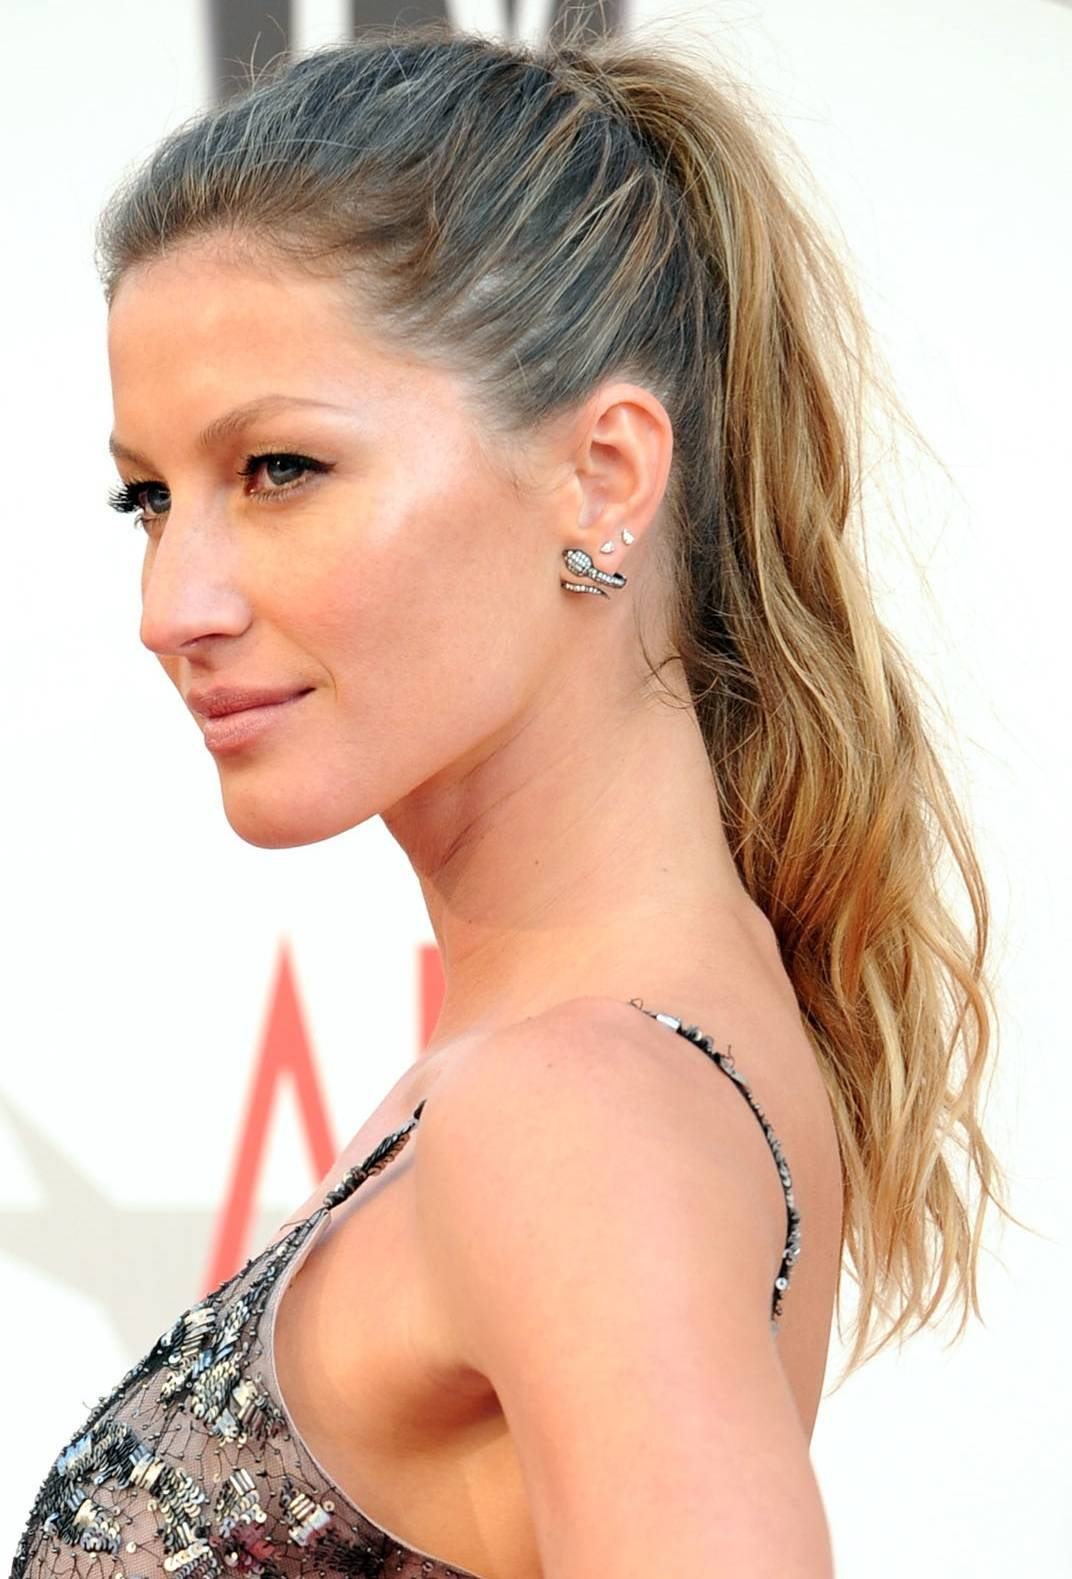 Hairstyles For Women Blonde Ponytail Hairstyles 2012